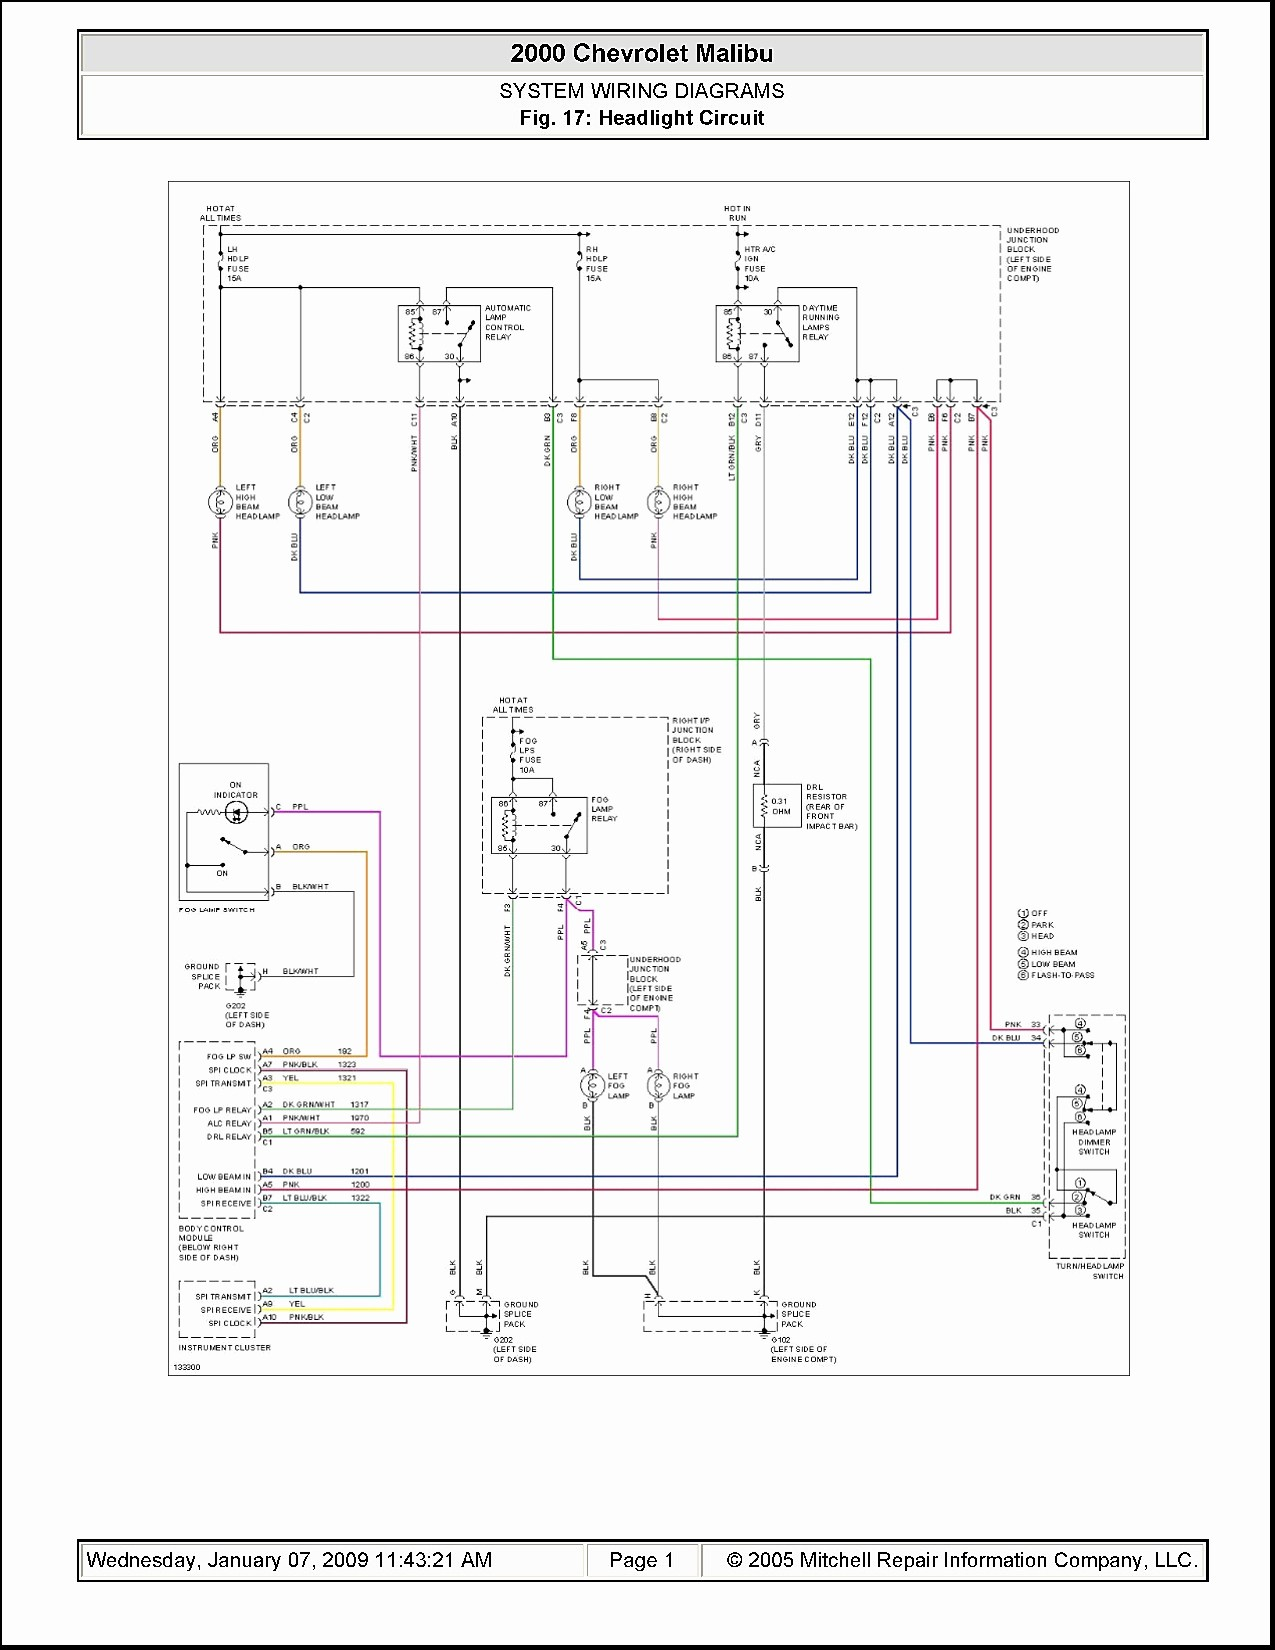 Hyundai Santa Fe Wiring Diagram Solutions Mp3 03 Headlight Switch Example